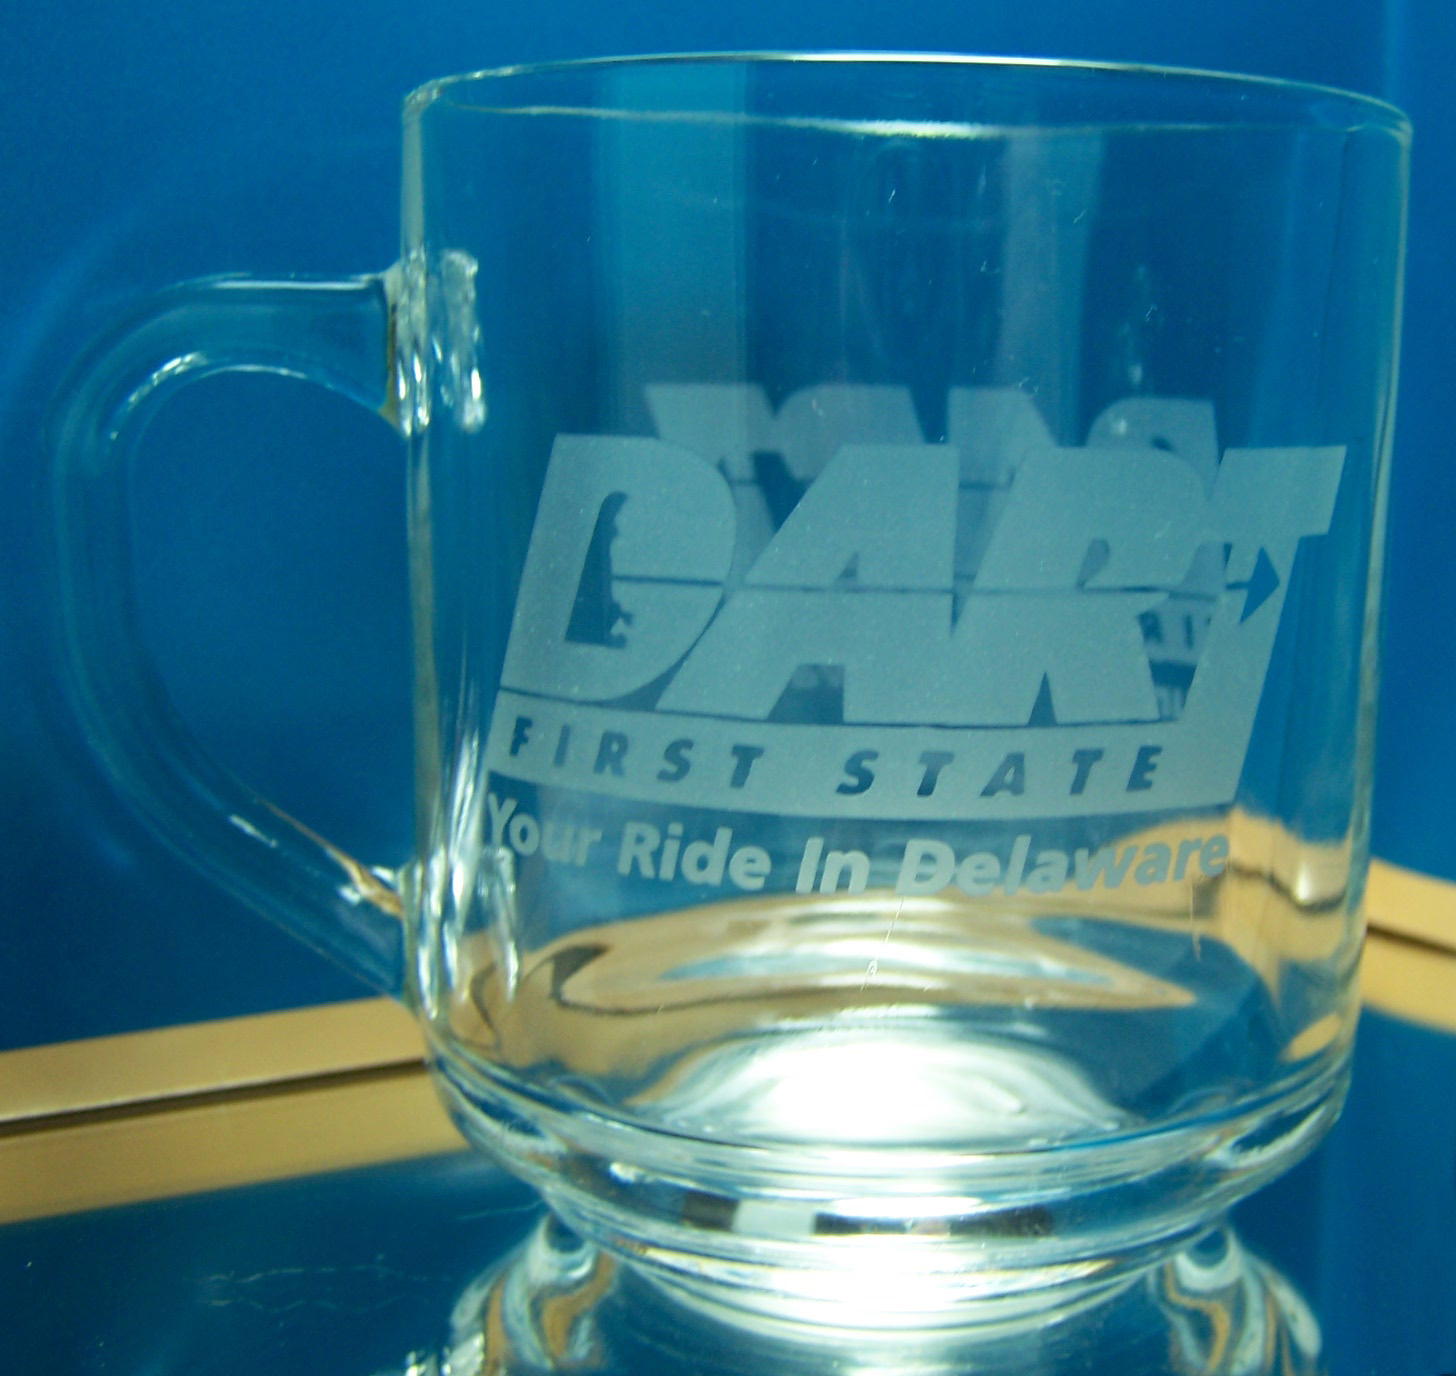 Your Ride In Delaware coffee mug